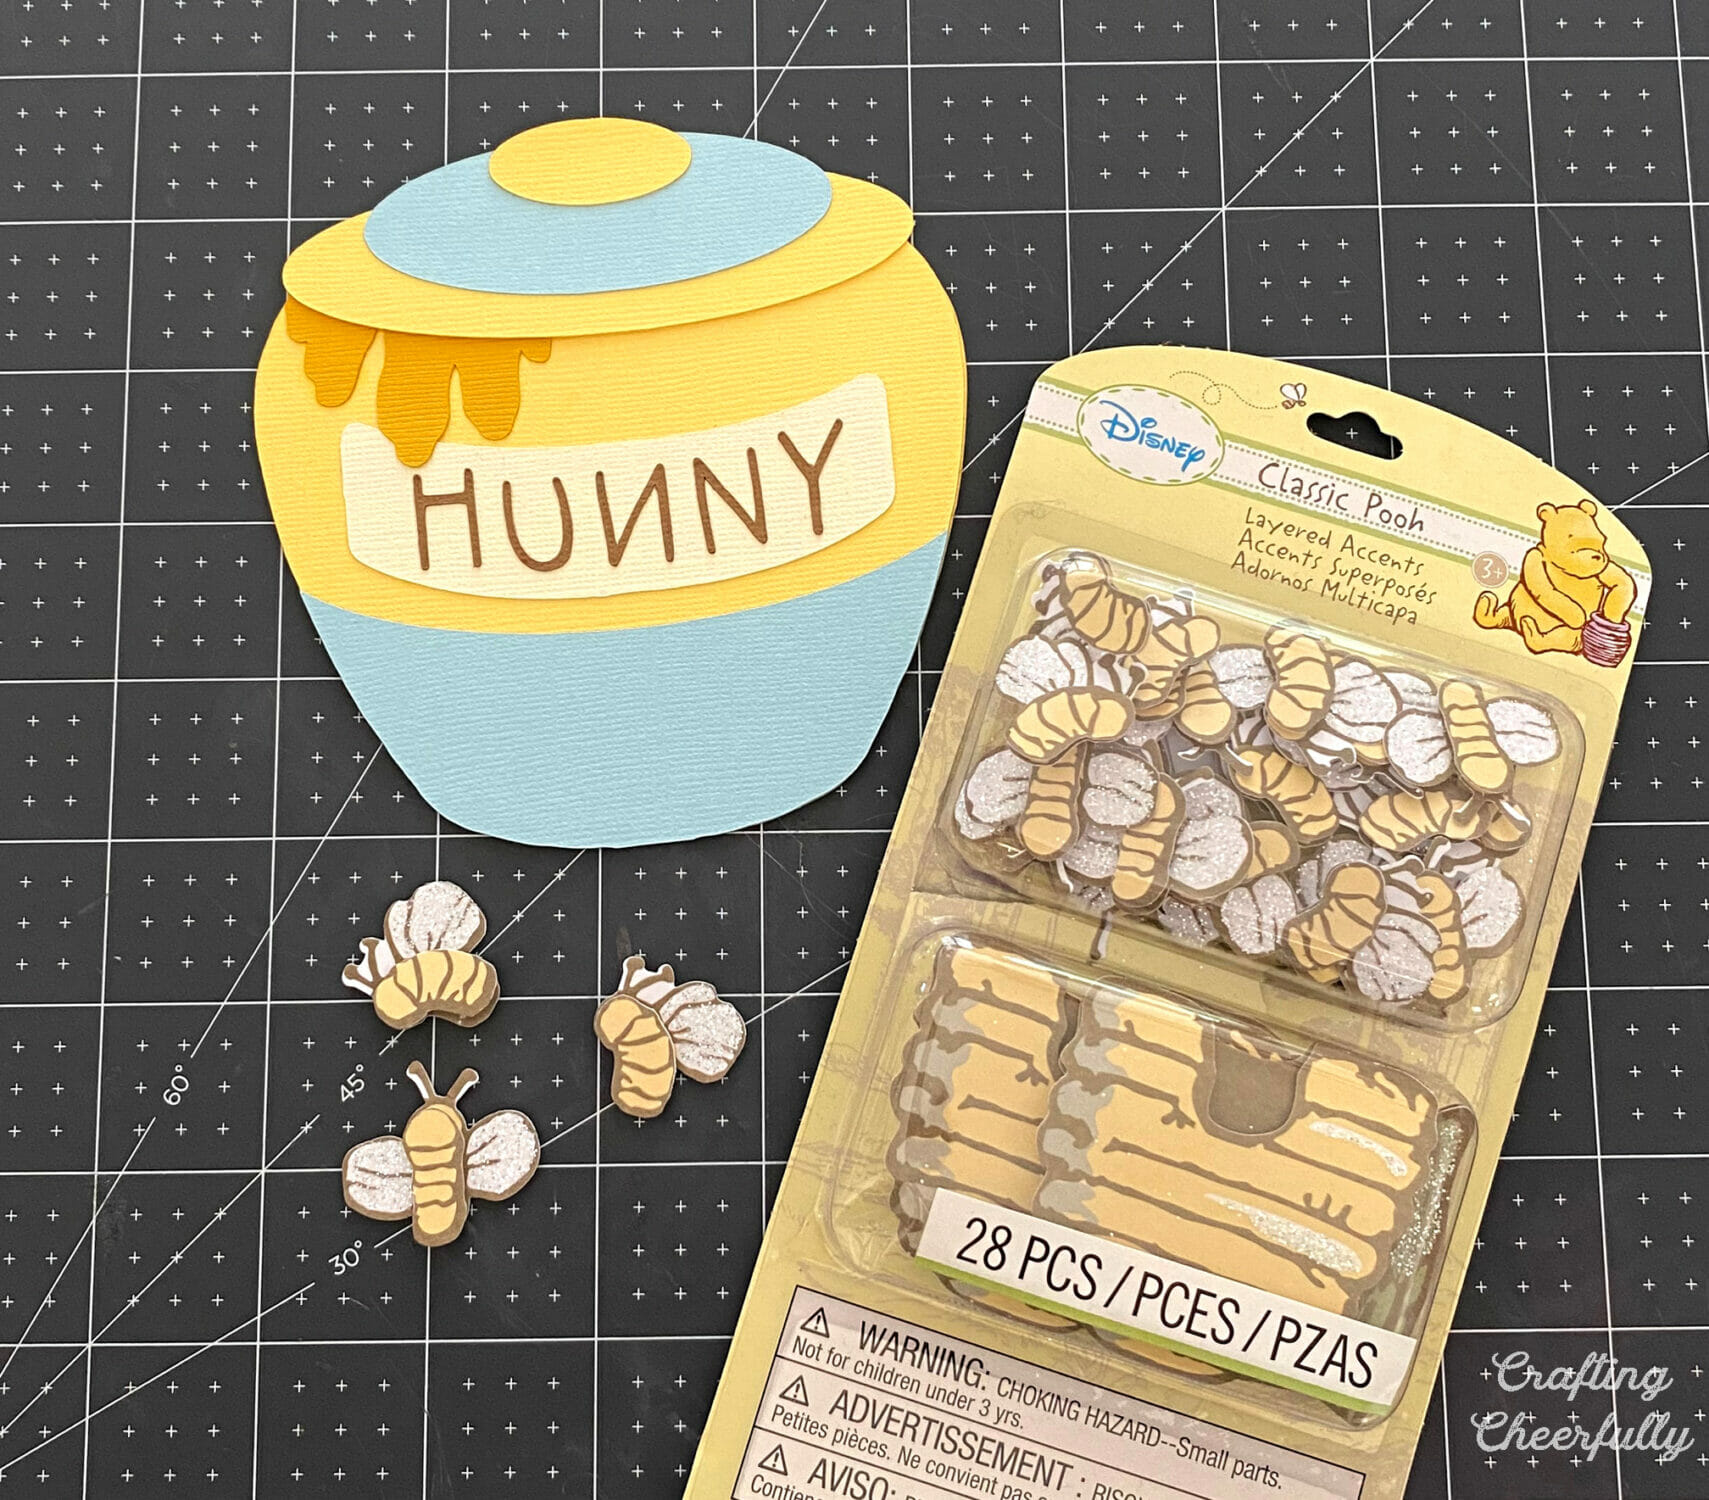 Bumblebee embellishments are added to the honey pot card.